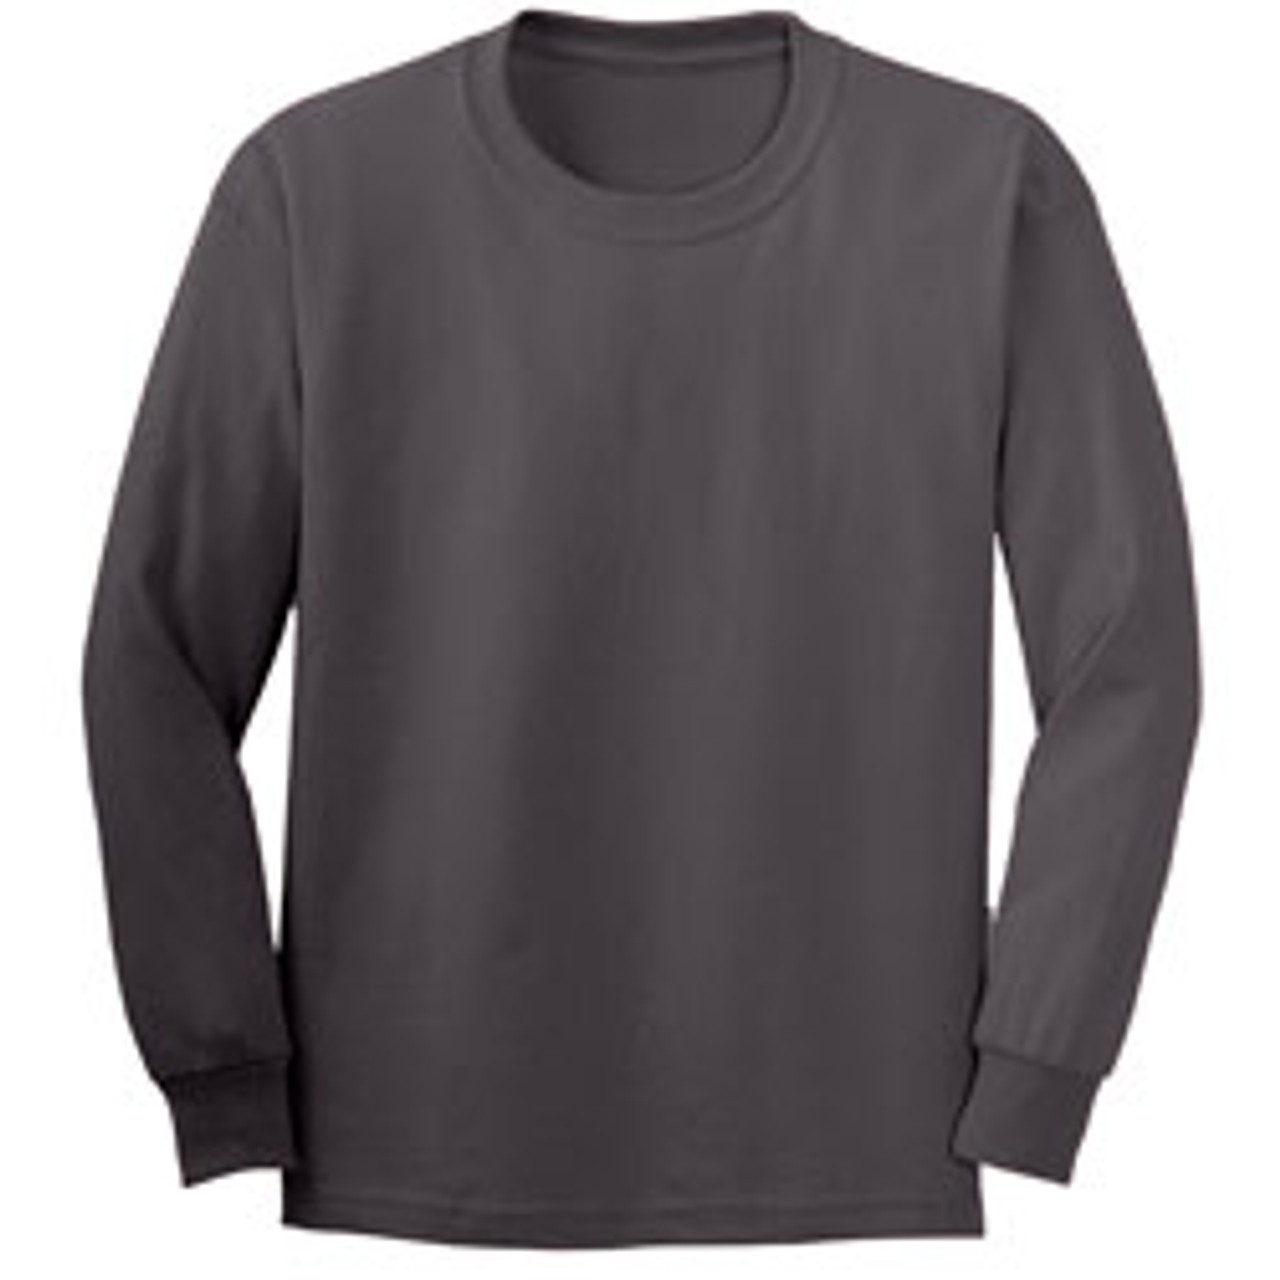 5d54d656944 Bayside 6100 - USA Made Long Sleeve Cotton T-Shirt  6100 - Black  6100 -  Charcoal ...